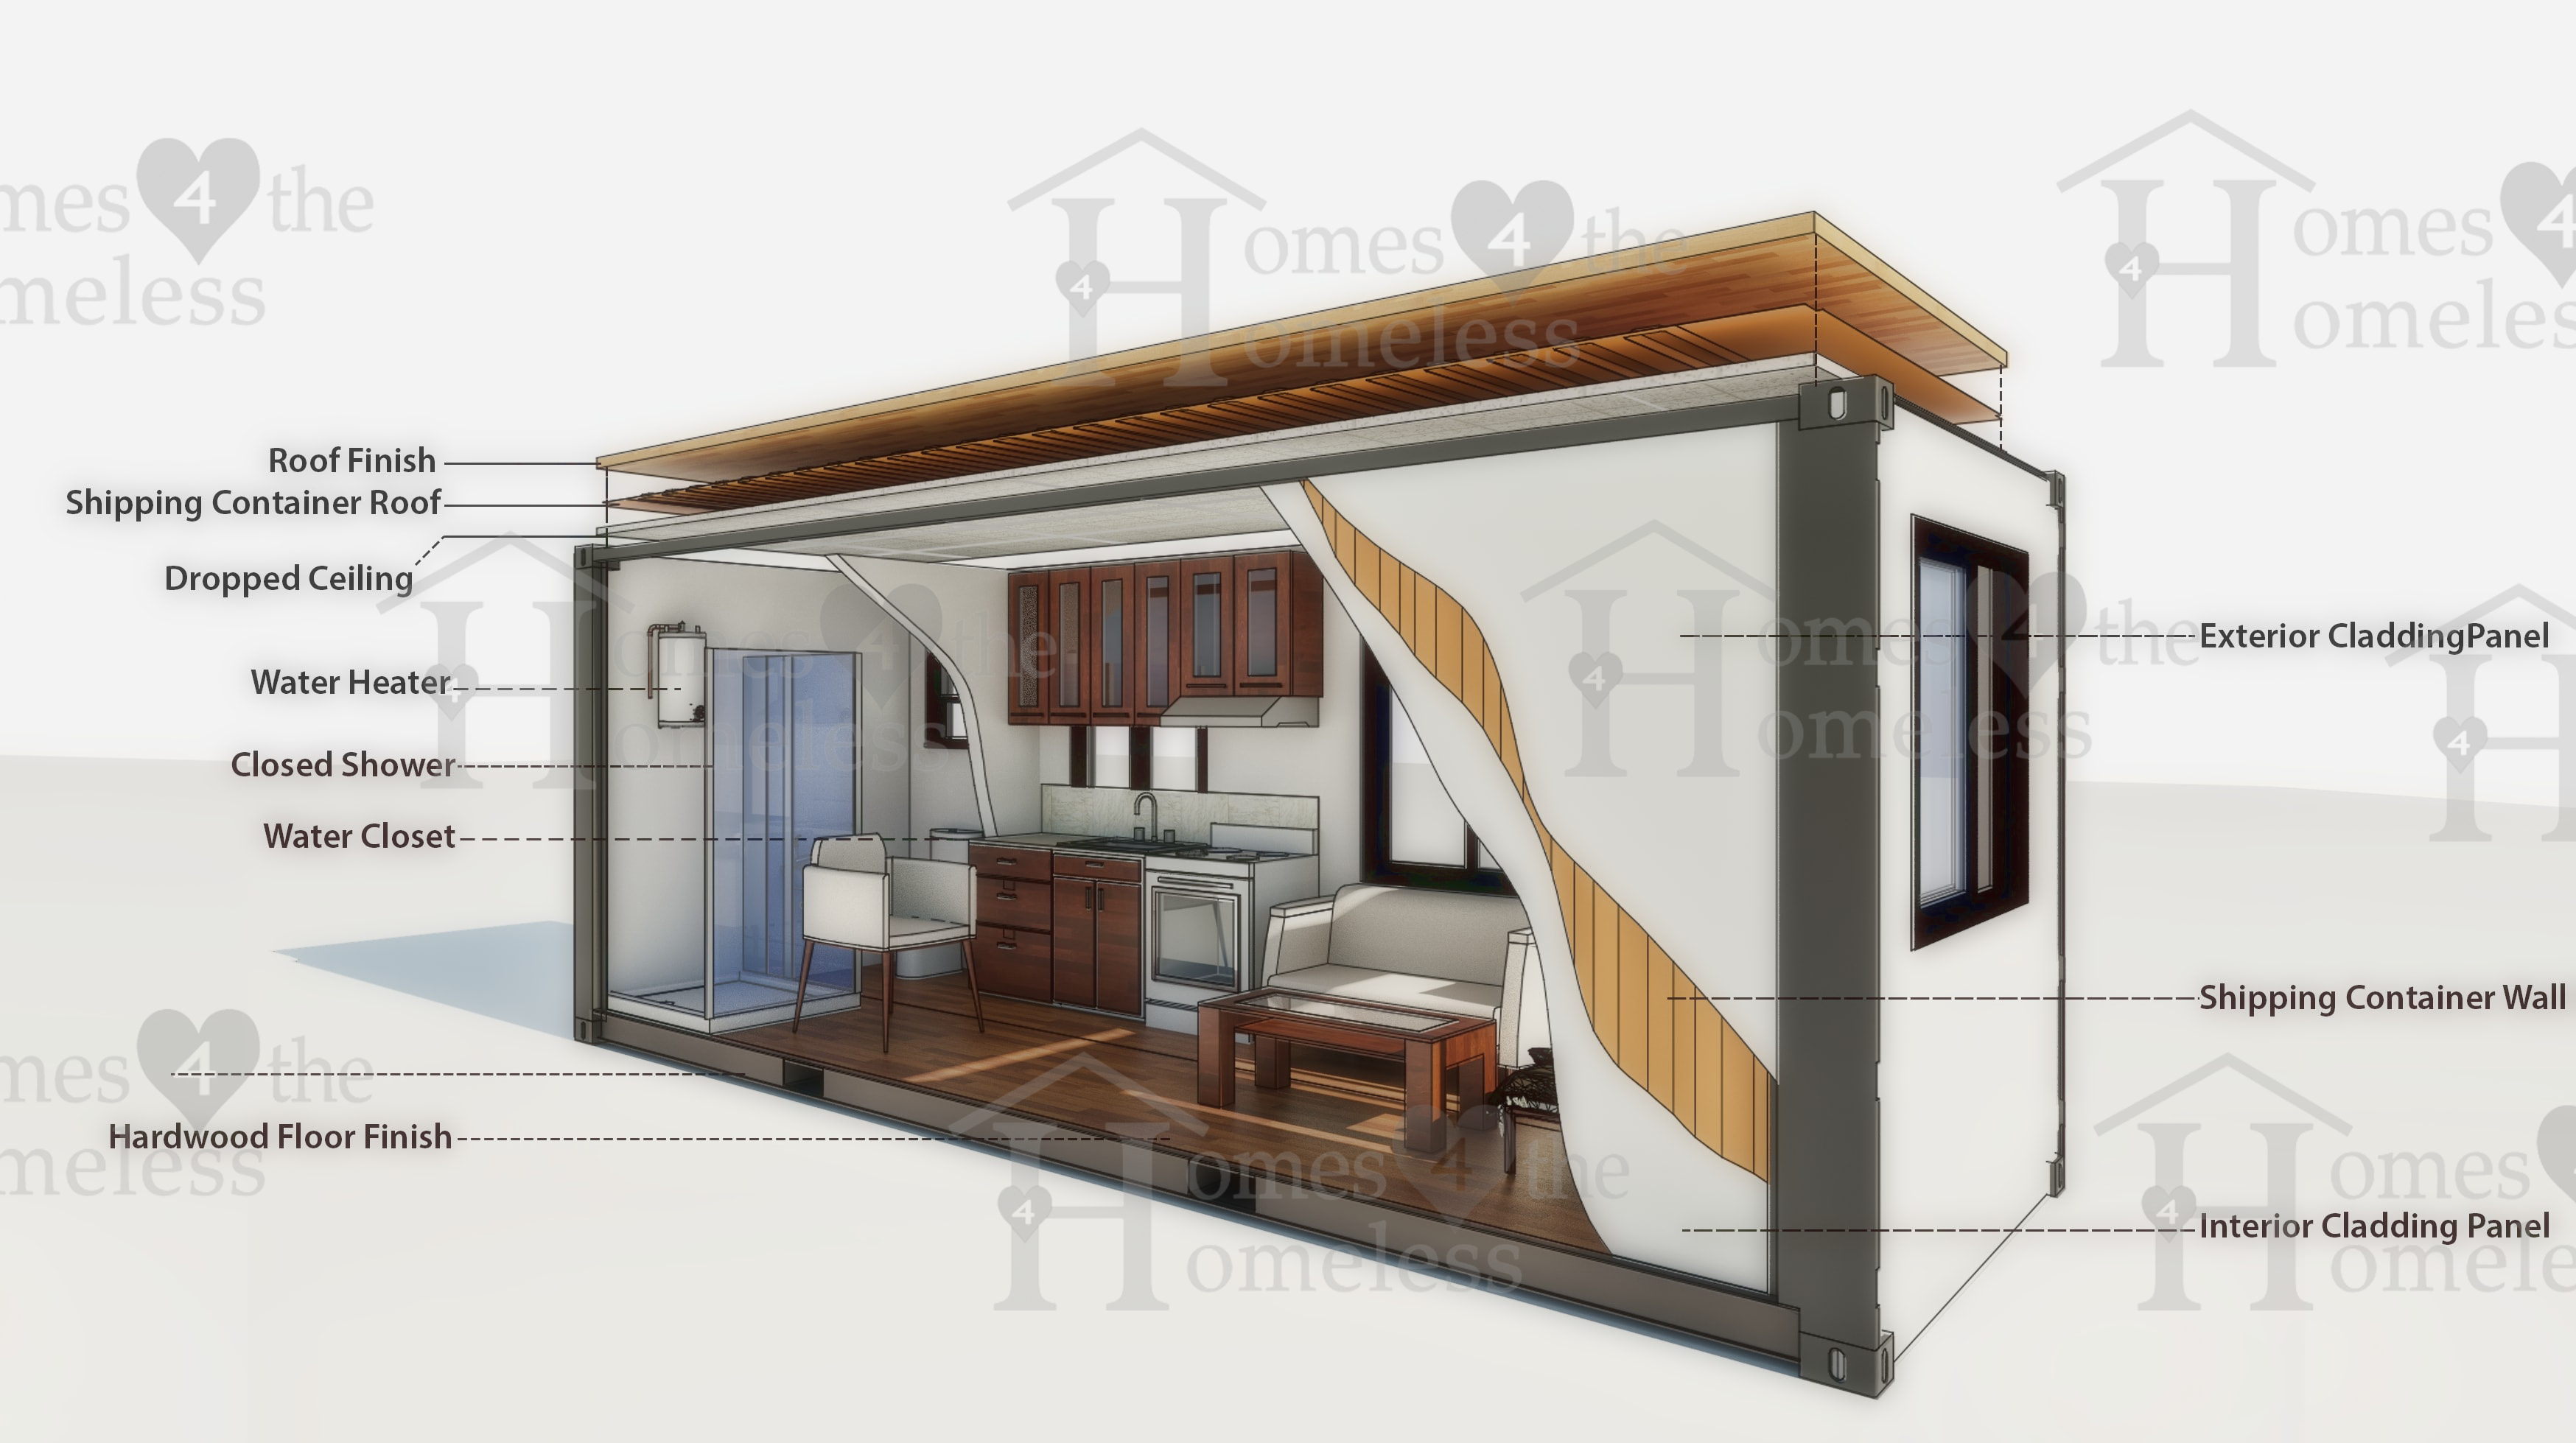 exploded view and cutaway of modular home sing (1)